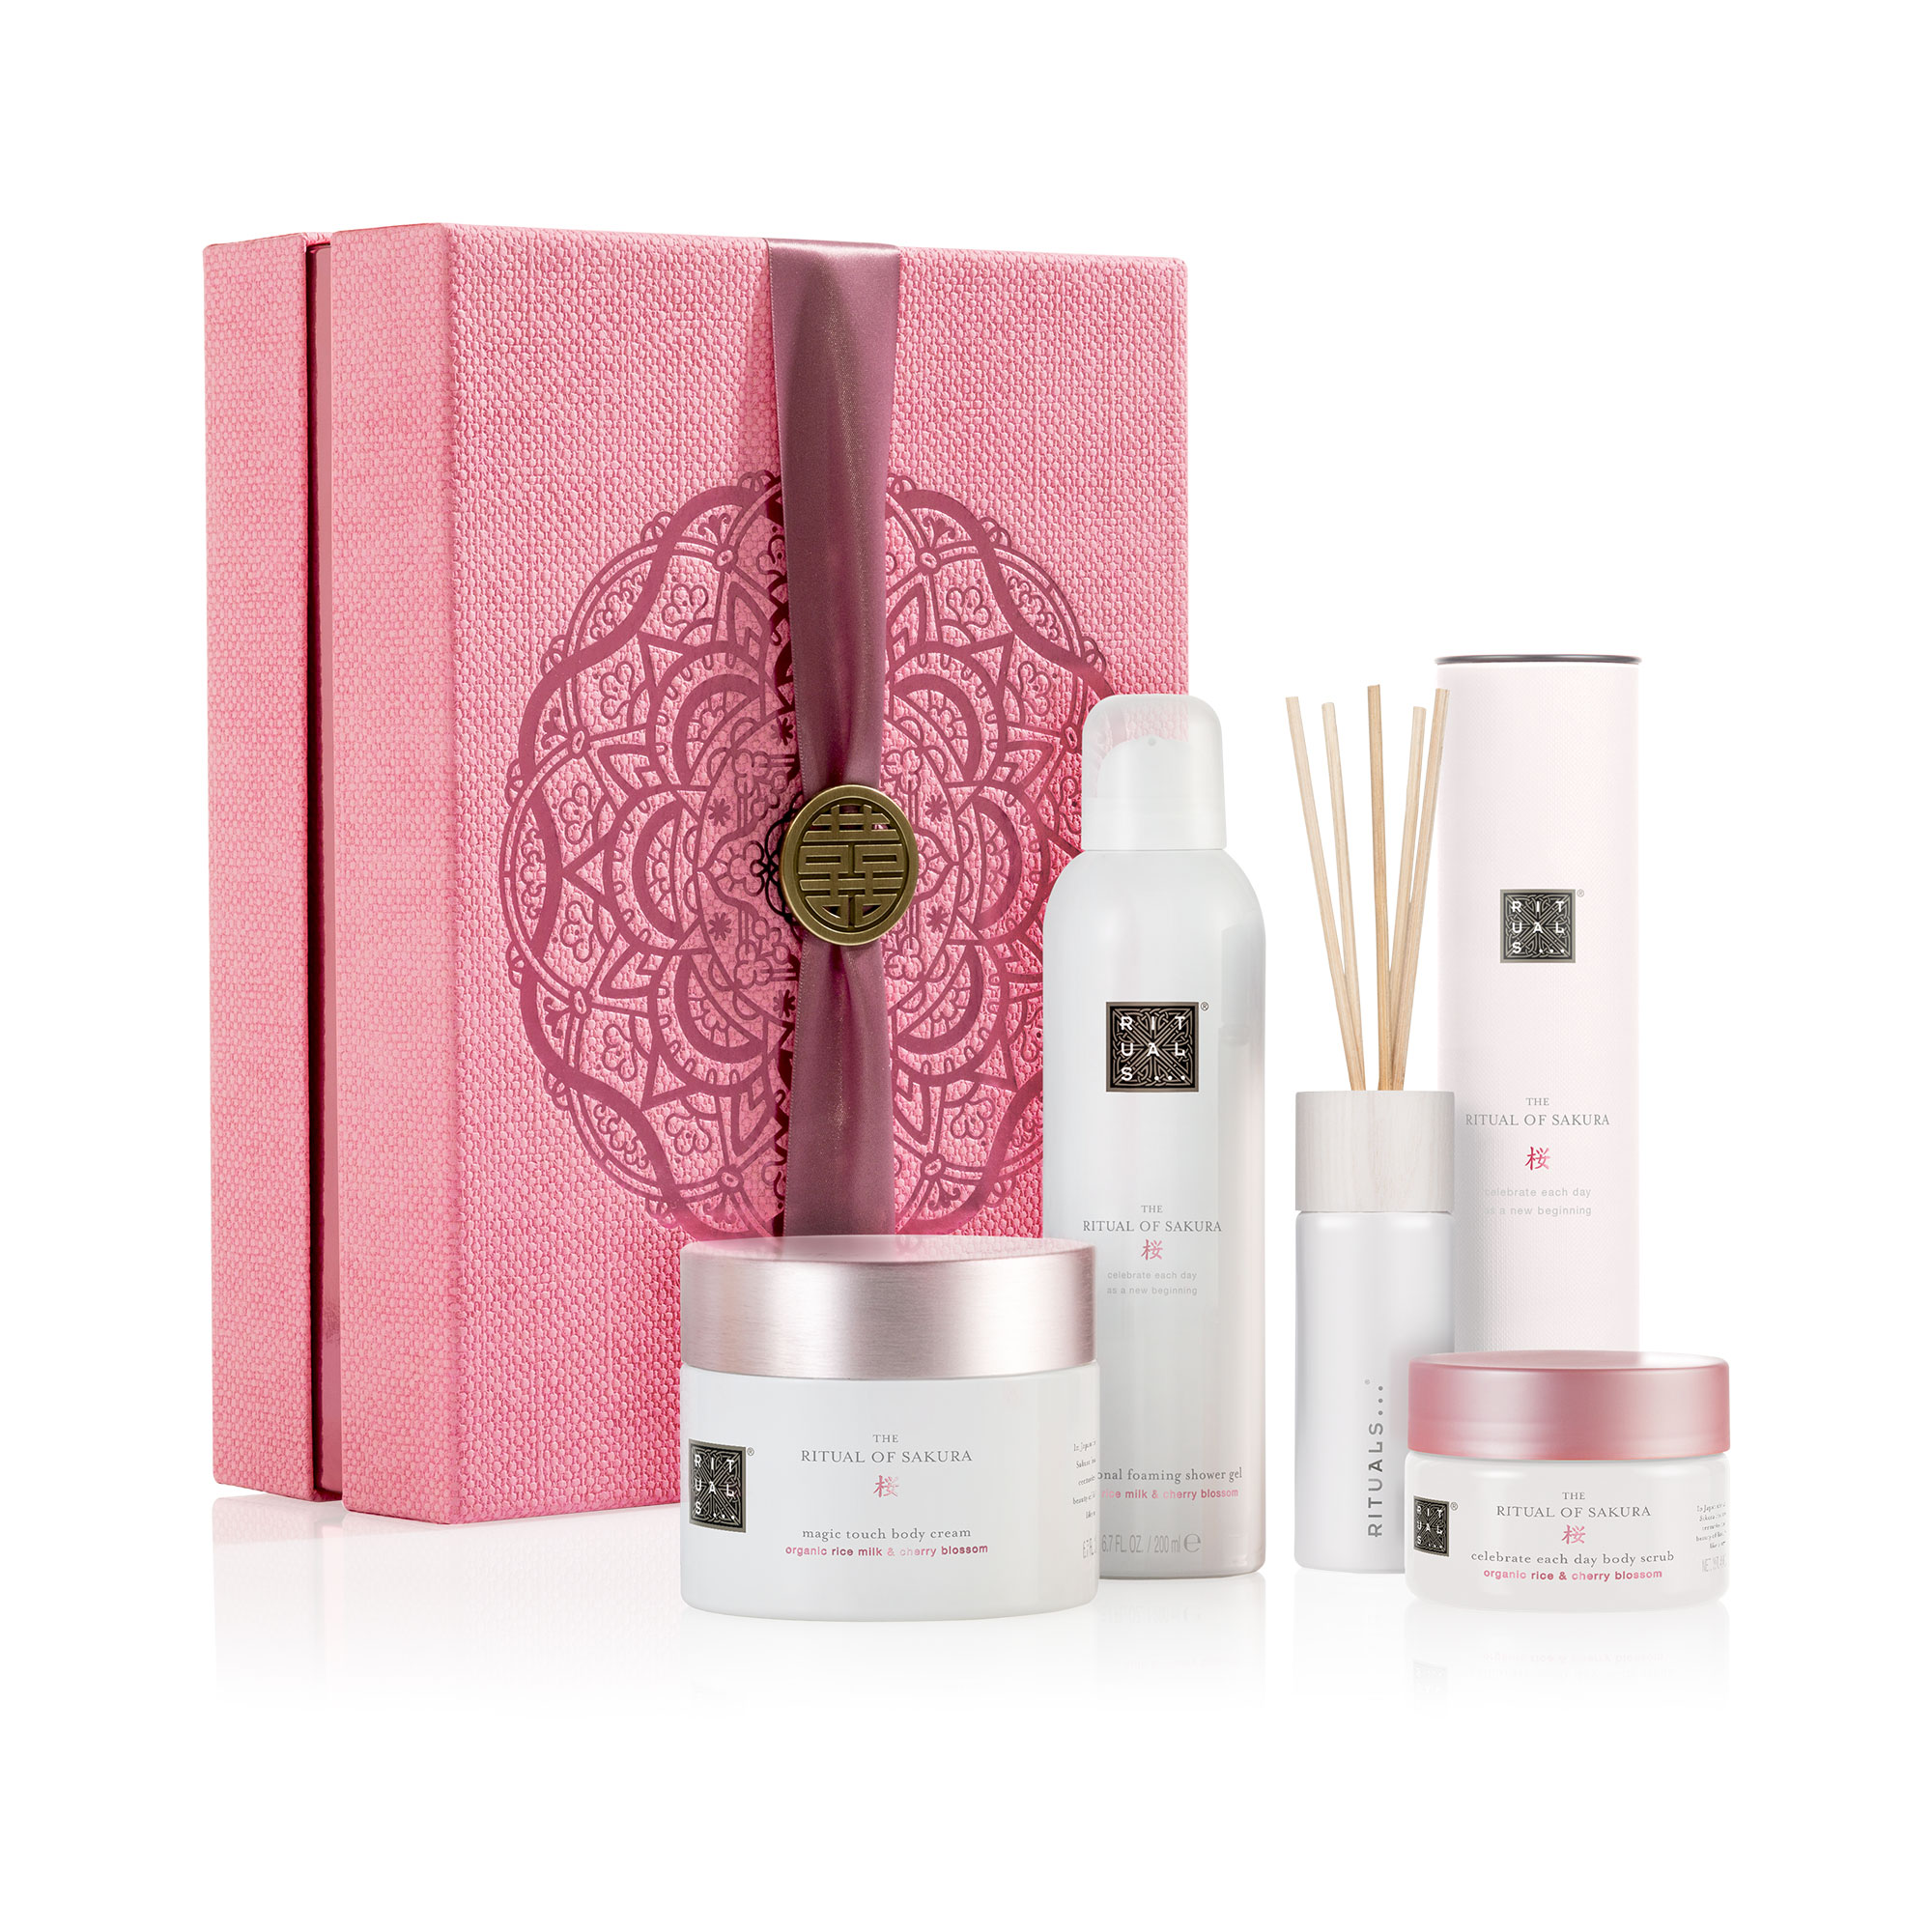 The Ritual Of Sakura - Renewing Collection Large Giftbox